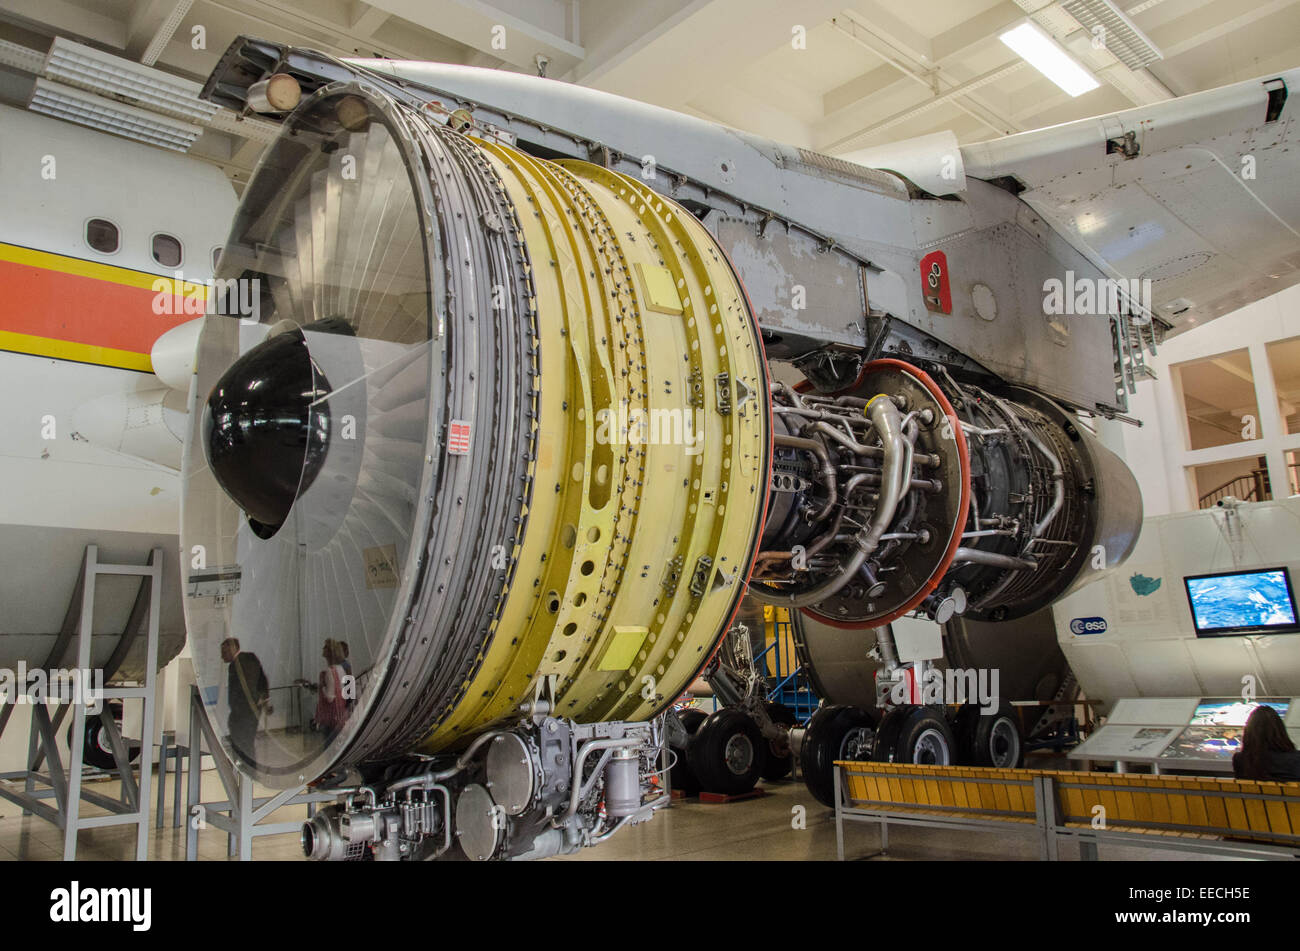 Quite an amazing experience to stand in front of this General Electric fanjet turboprop engine. - Stock Image